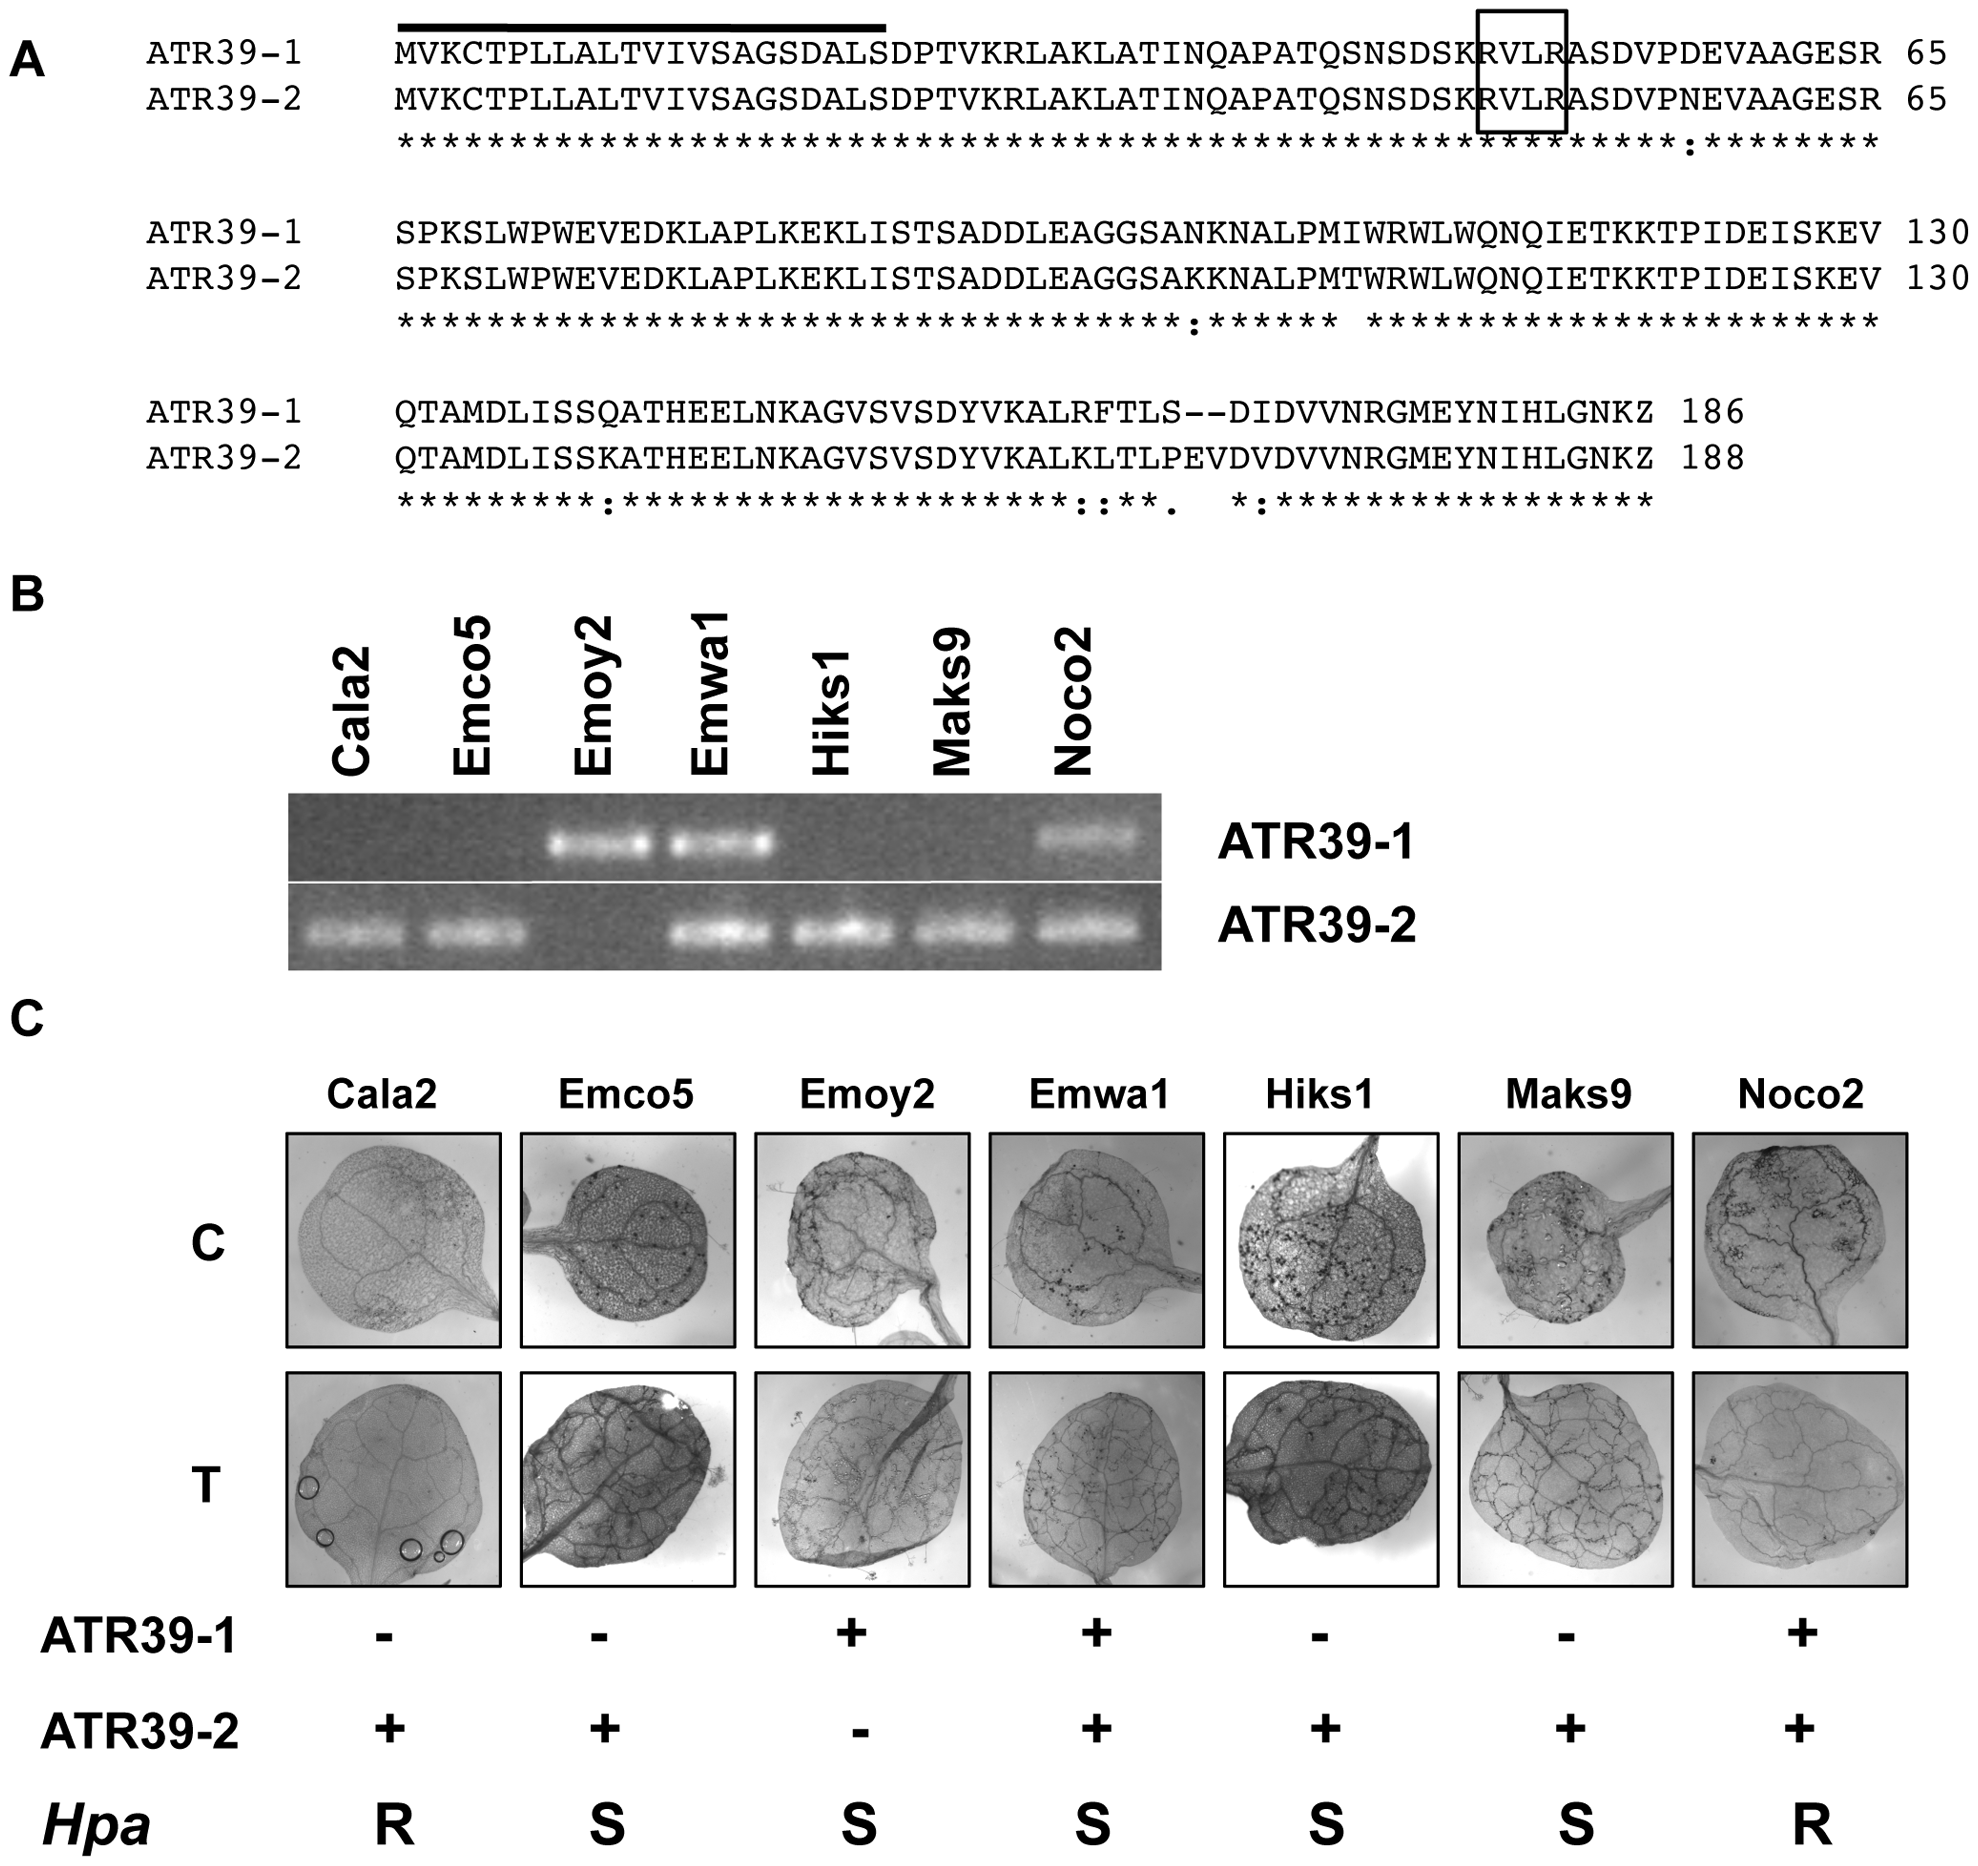 <i>ATR39</i> alleles are expressed in different <i>Hpa</i> isolates, but expression of <i>ATR39-1</i> does not correlate with avirulence on Wei-0.